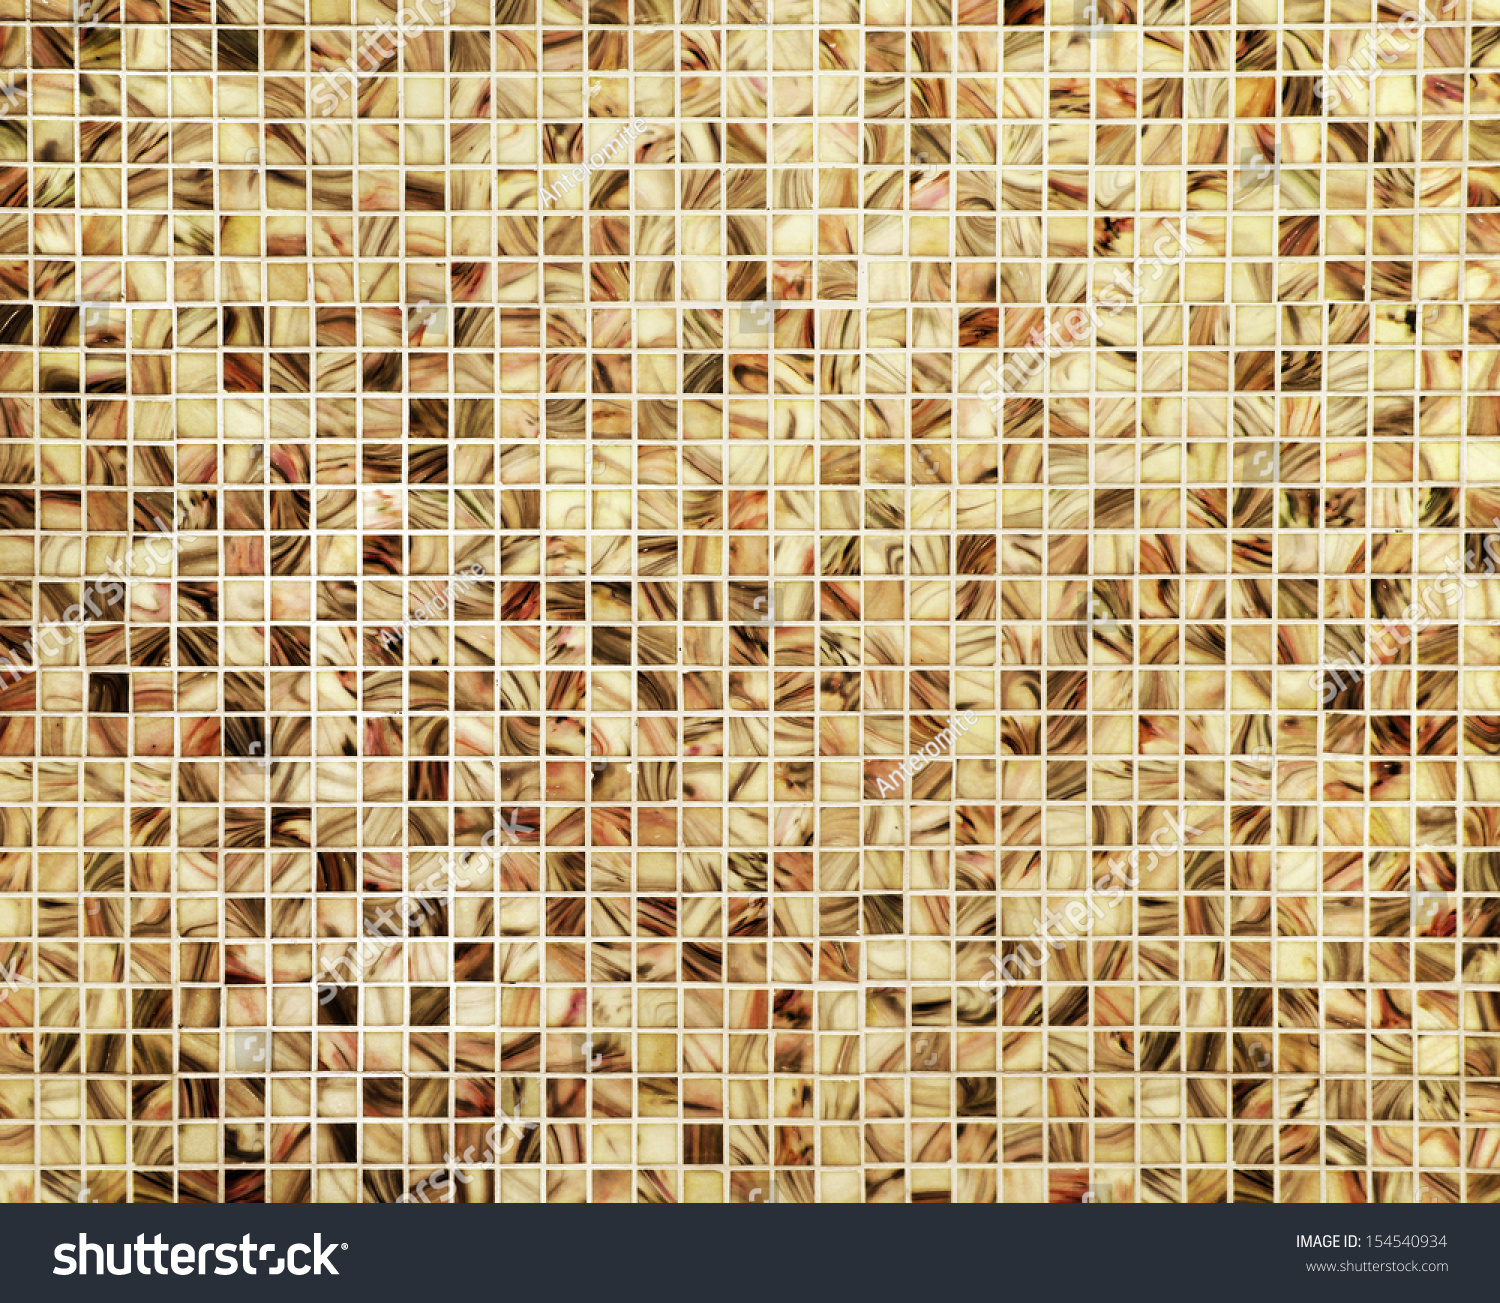 Marble mosaic floor tiles geometric decoration stock photo marble mosaic floor tiles geometric decoration background dailygadgetfo Image collections